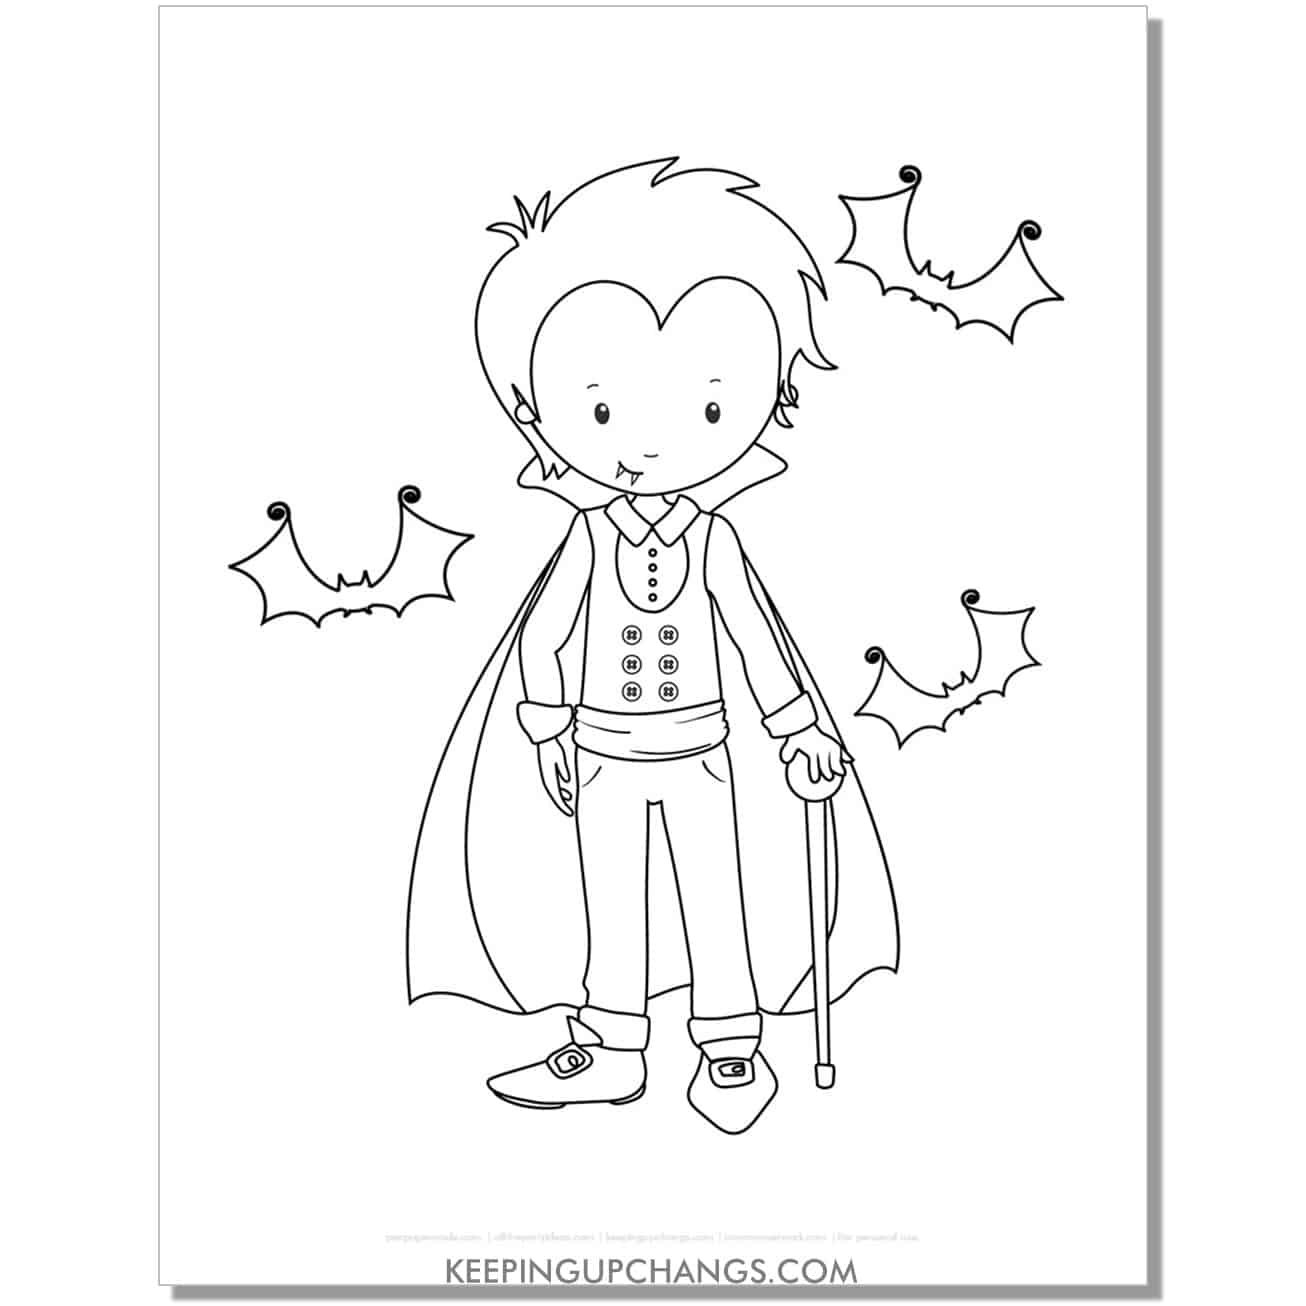 free vampire boy with cane and bats coloring page.